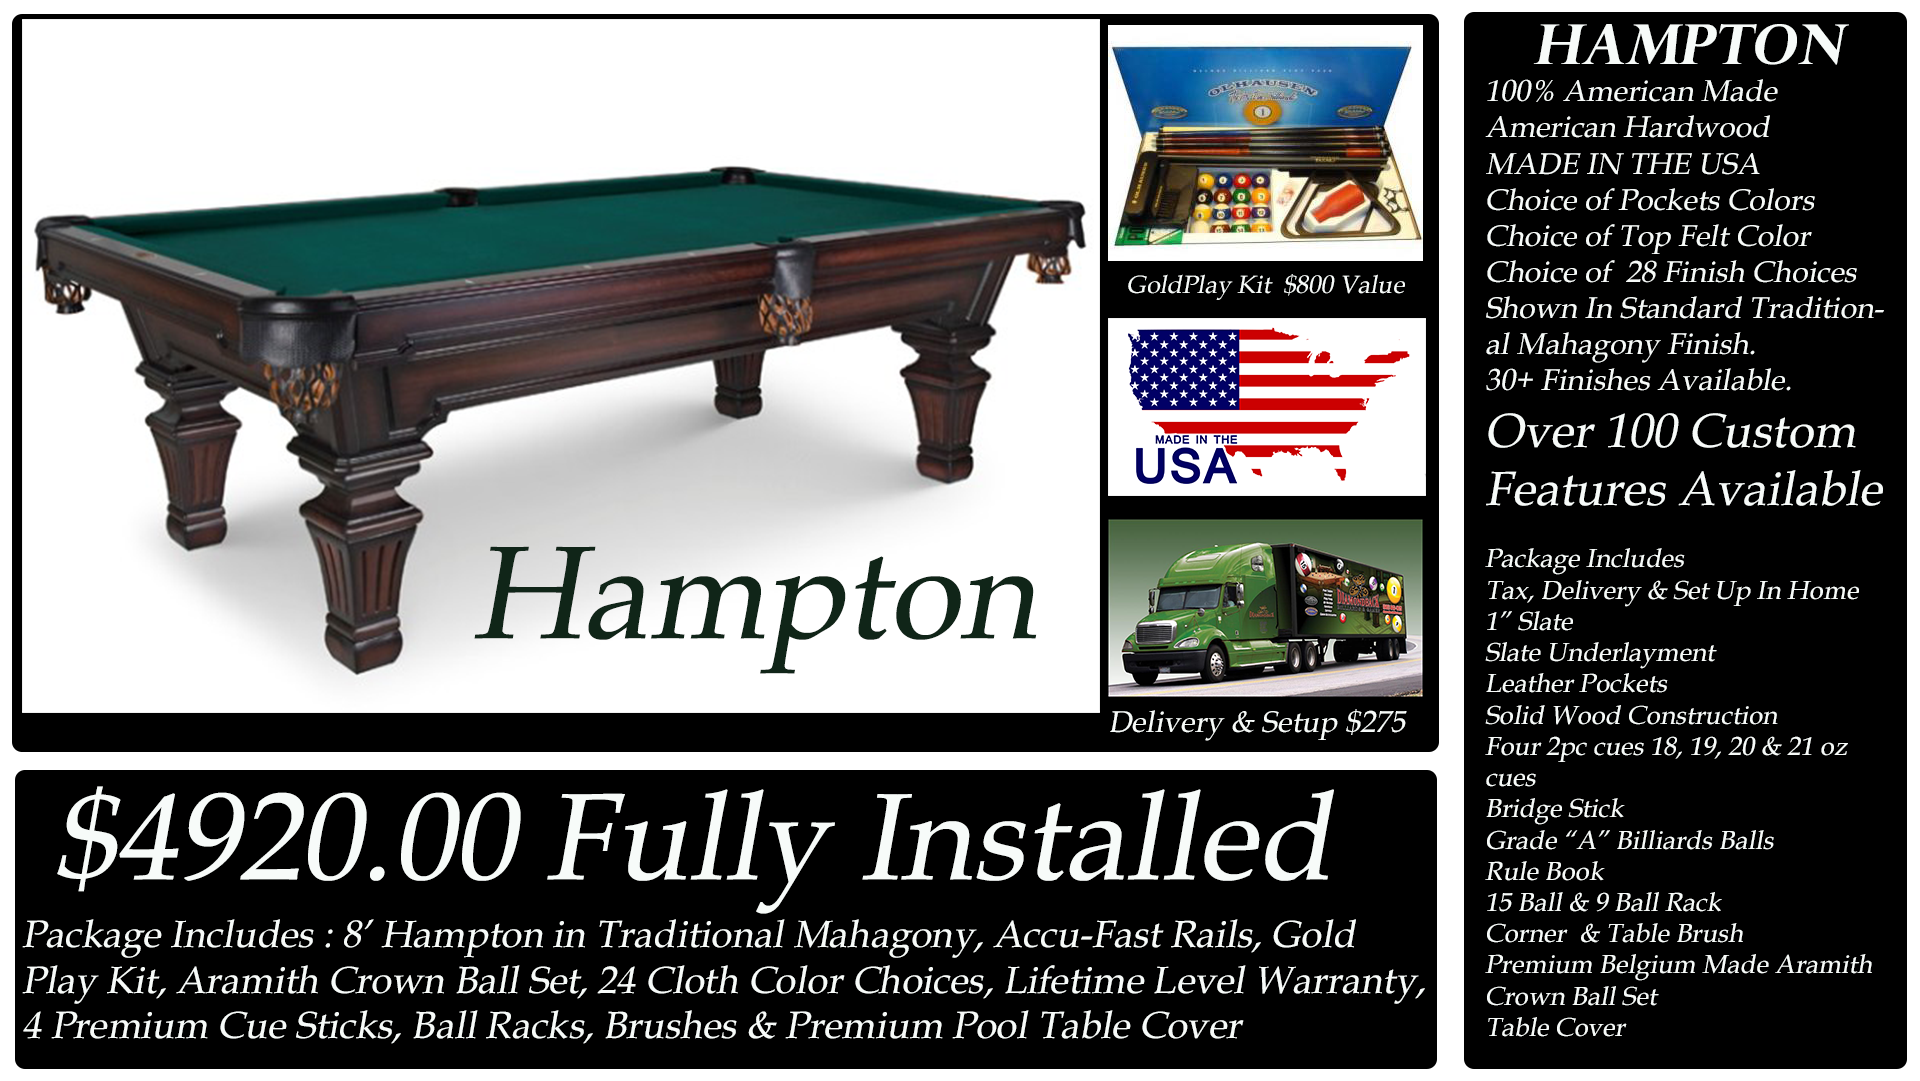 Diamondback Billiards Pool Table Packages - Pool table delivery and setup